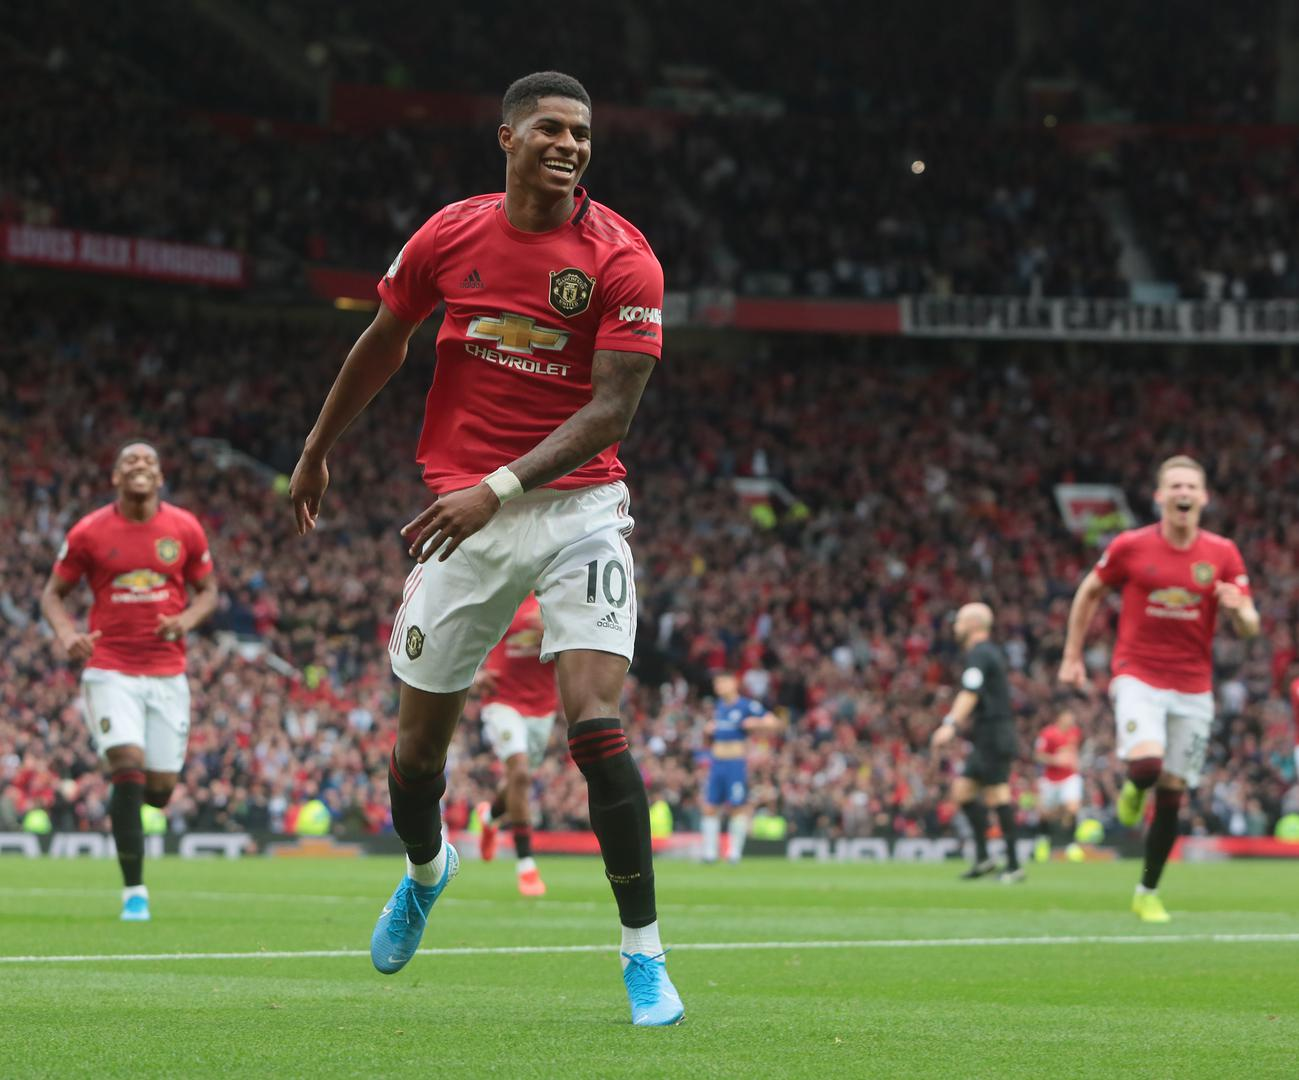 Marcus Rashford celebrates scoring against Chelsea